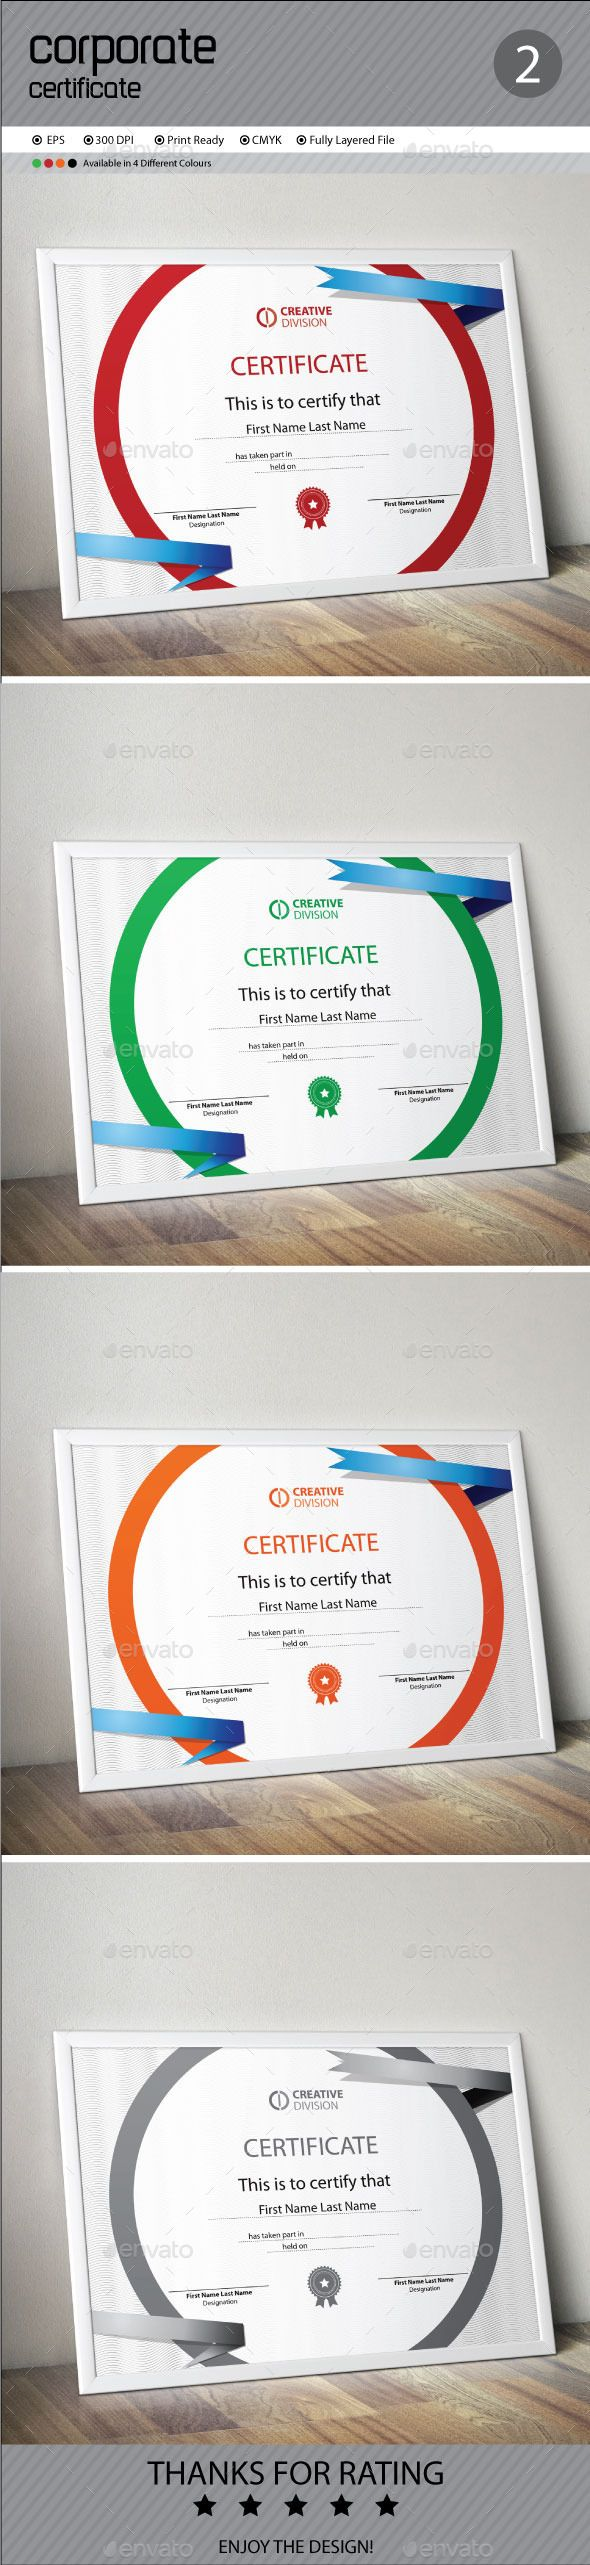 Certificate Template Vector EPS. Download here: http://graphicriver.net/item/certificate/11159334?ref=ksioks